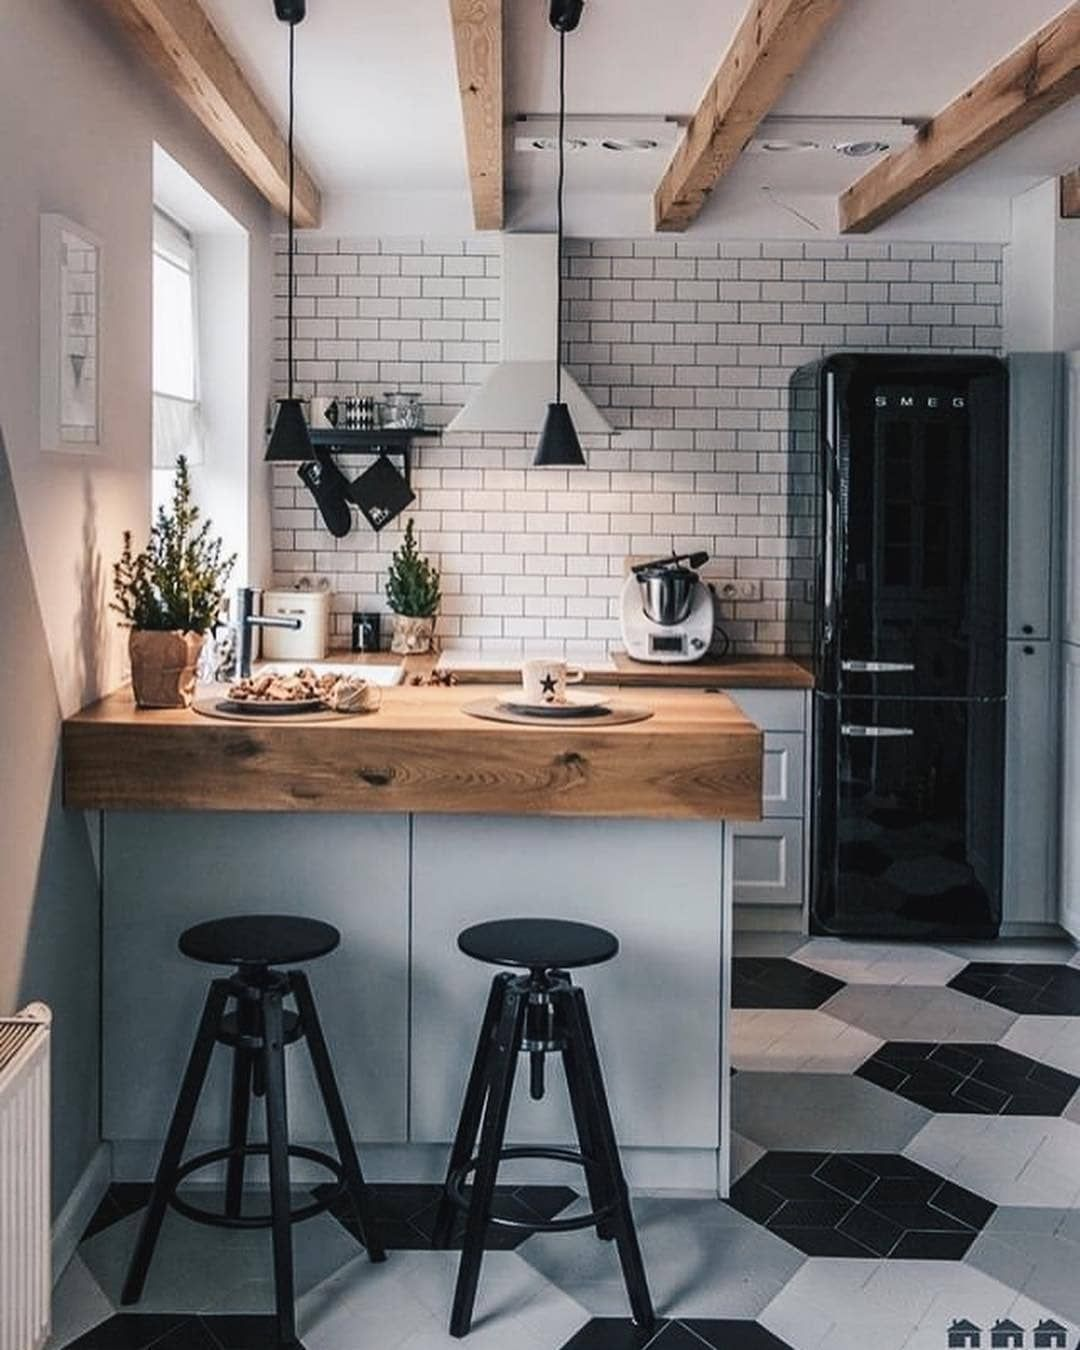 7 Tips To Have The Best Industrial Kitchen Style Keuken